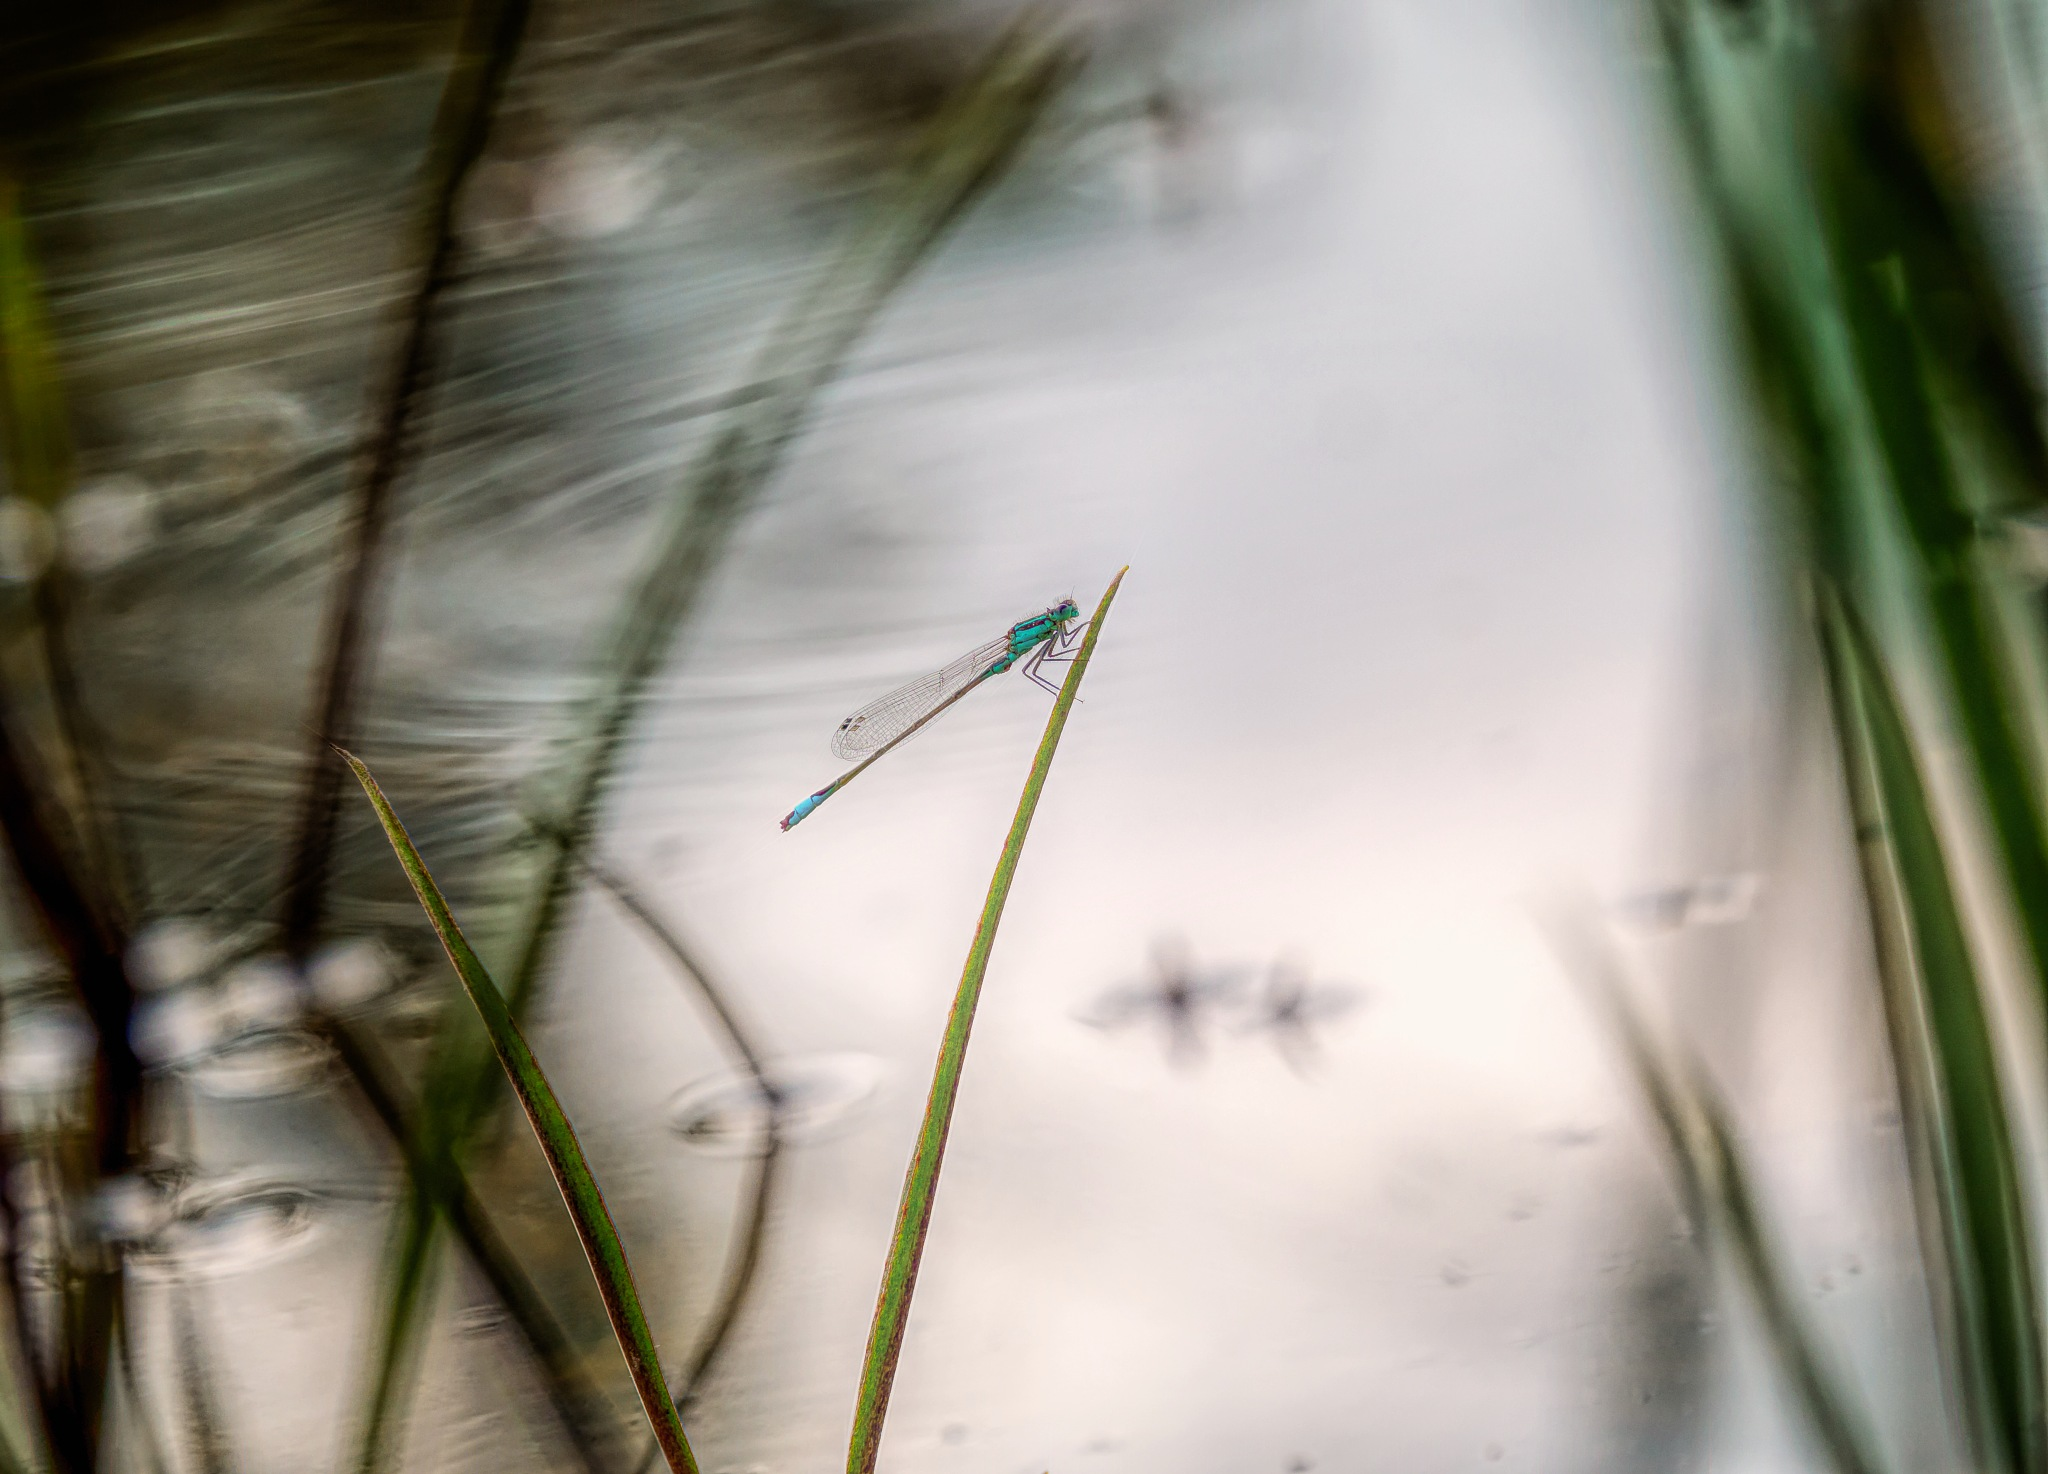 Just one damselfly by Sarah Walters